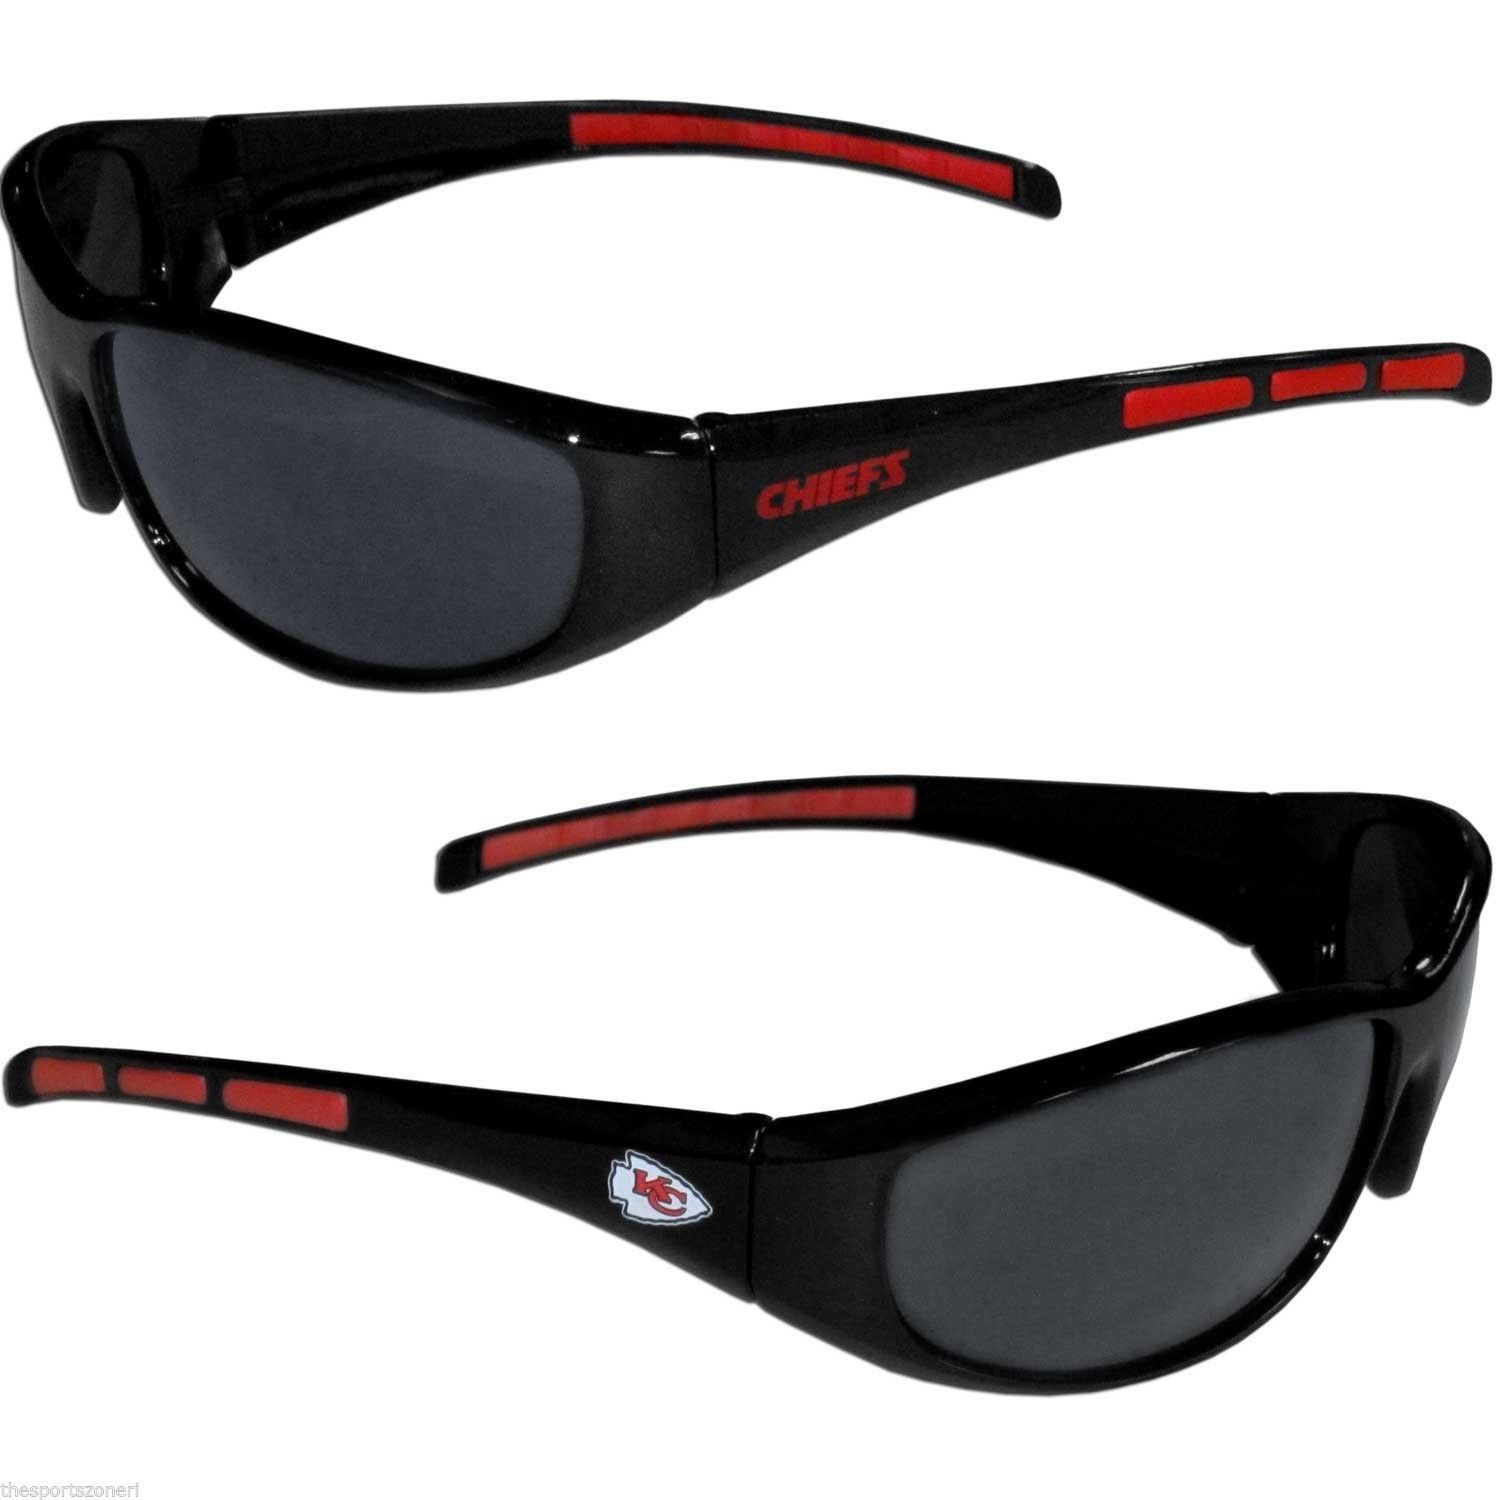 1 KANSAS CITY CHIEFS UV 400 WRAP SUNGLASSES TEAM LOGO NFL FOOTBALL